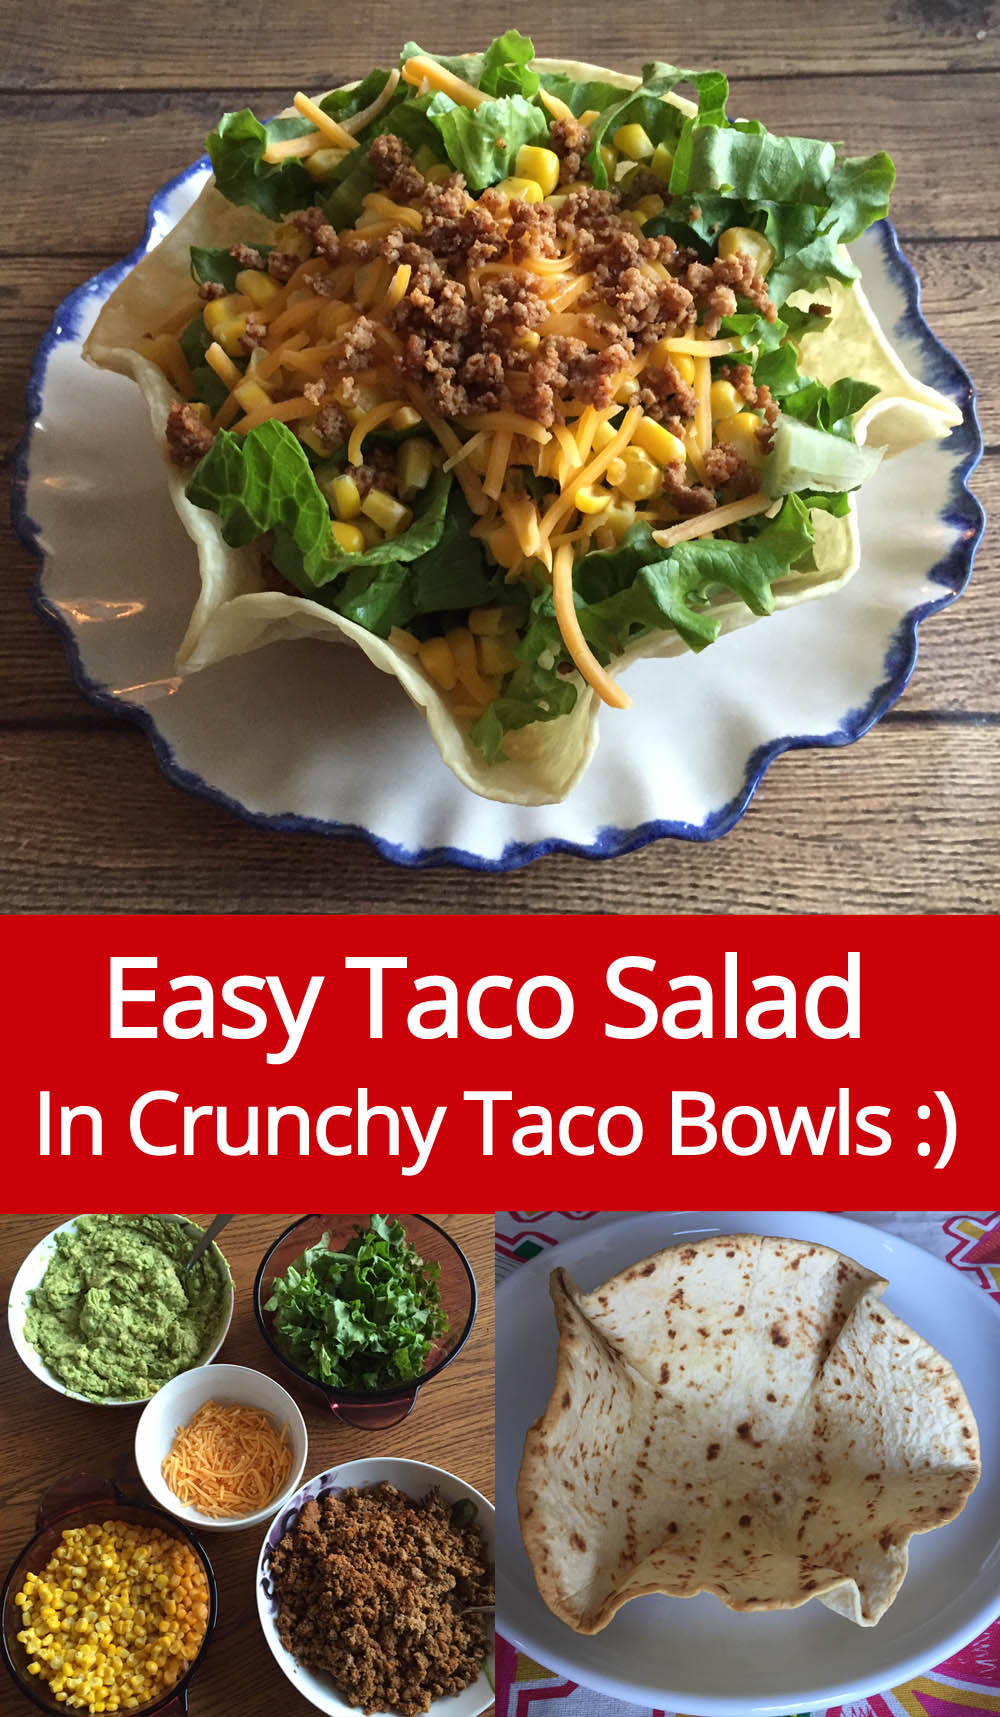 taco salad recipe has all your mouthwatering taco fixin's in a salad ...